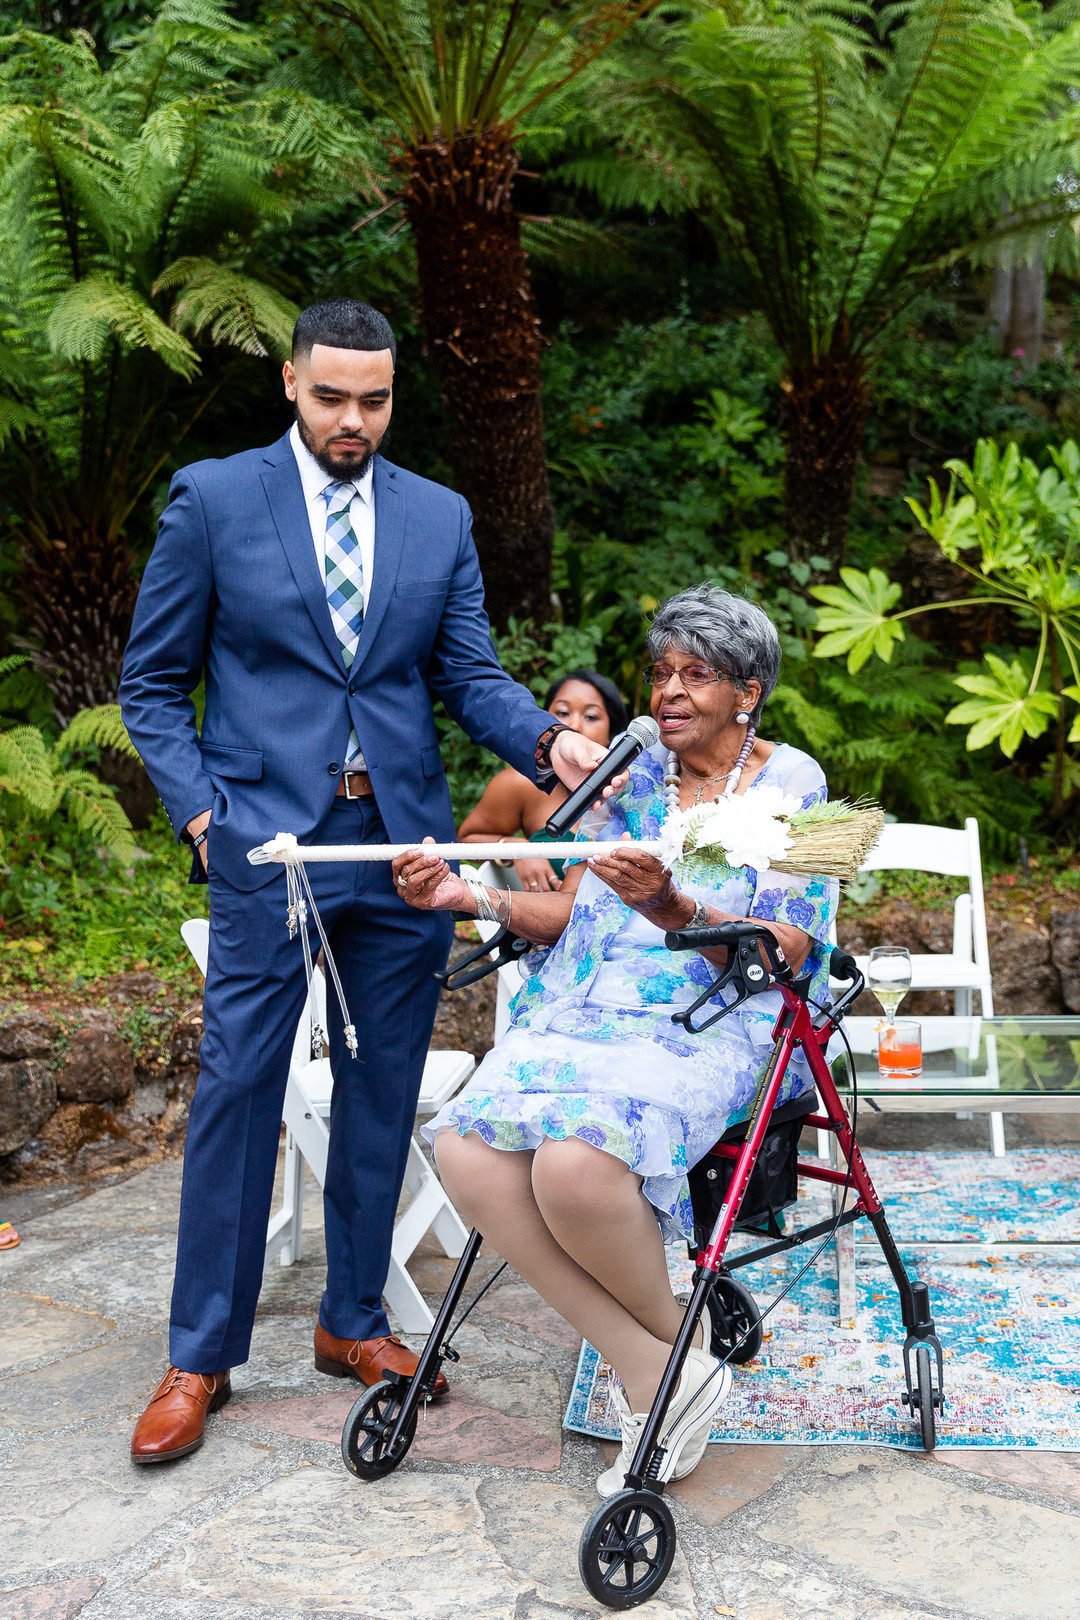 elderly relative blessing the couple while holding broom